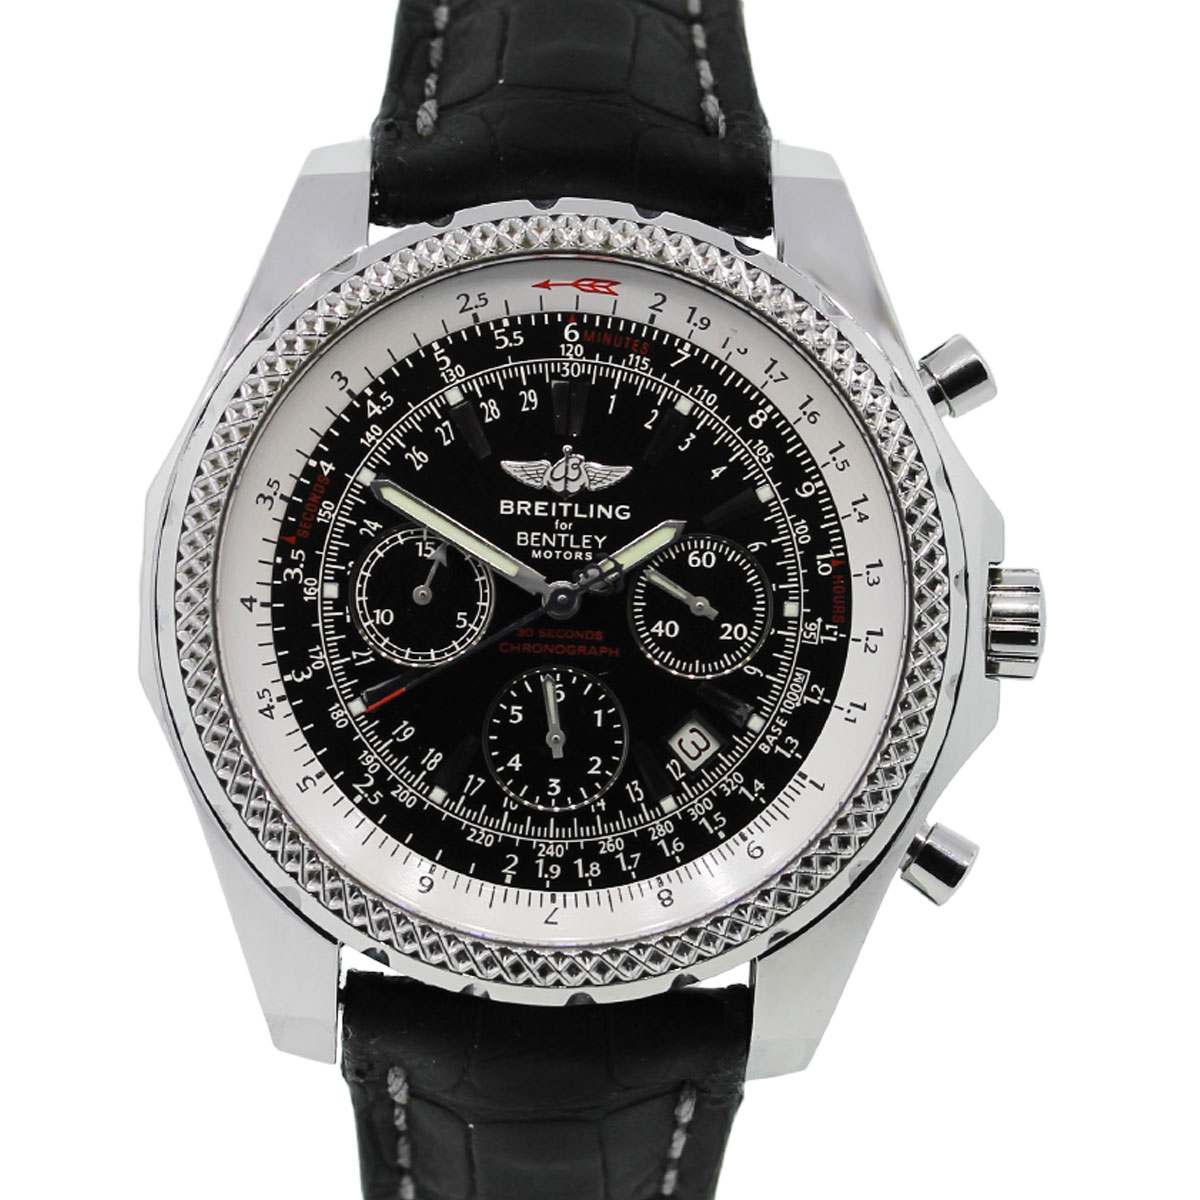 Breitling Bentley Watch >> Breitling For Bentley A25962 Black Dial Special Edition Watch